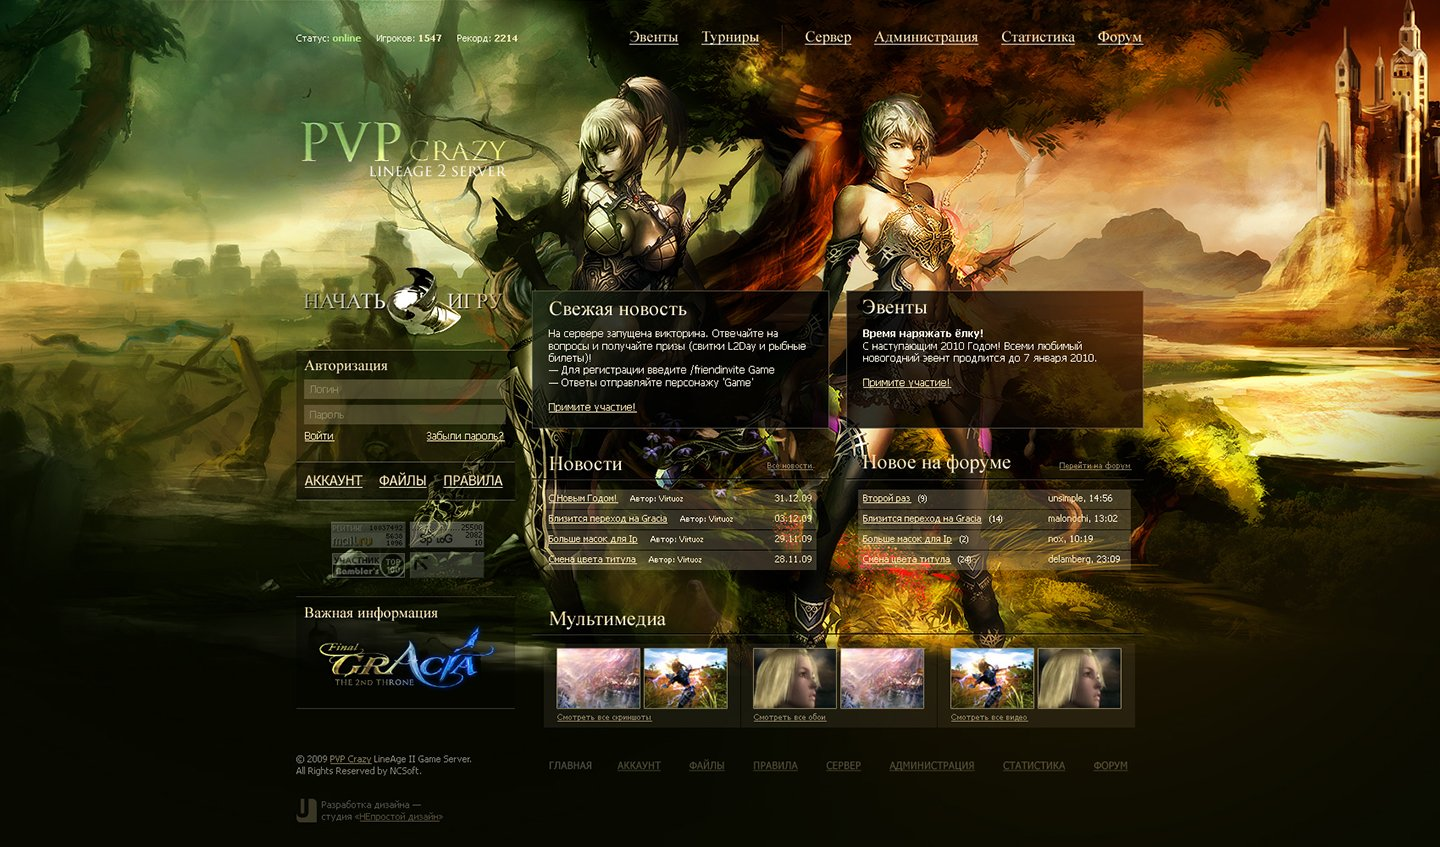 PvPCrazy > Website design for Lineage 2 private server. Main page